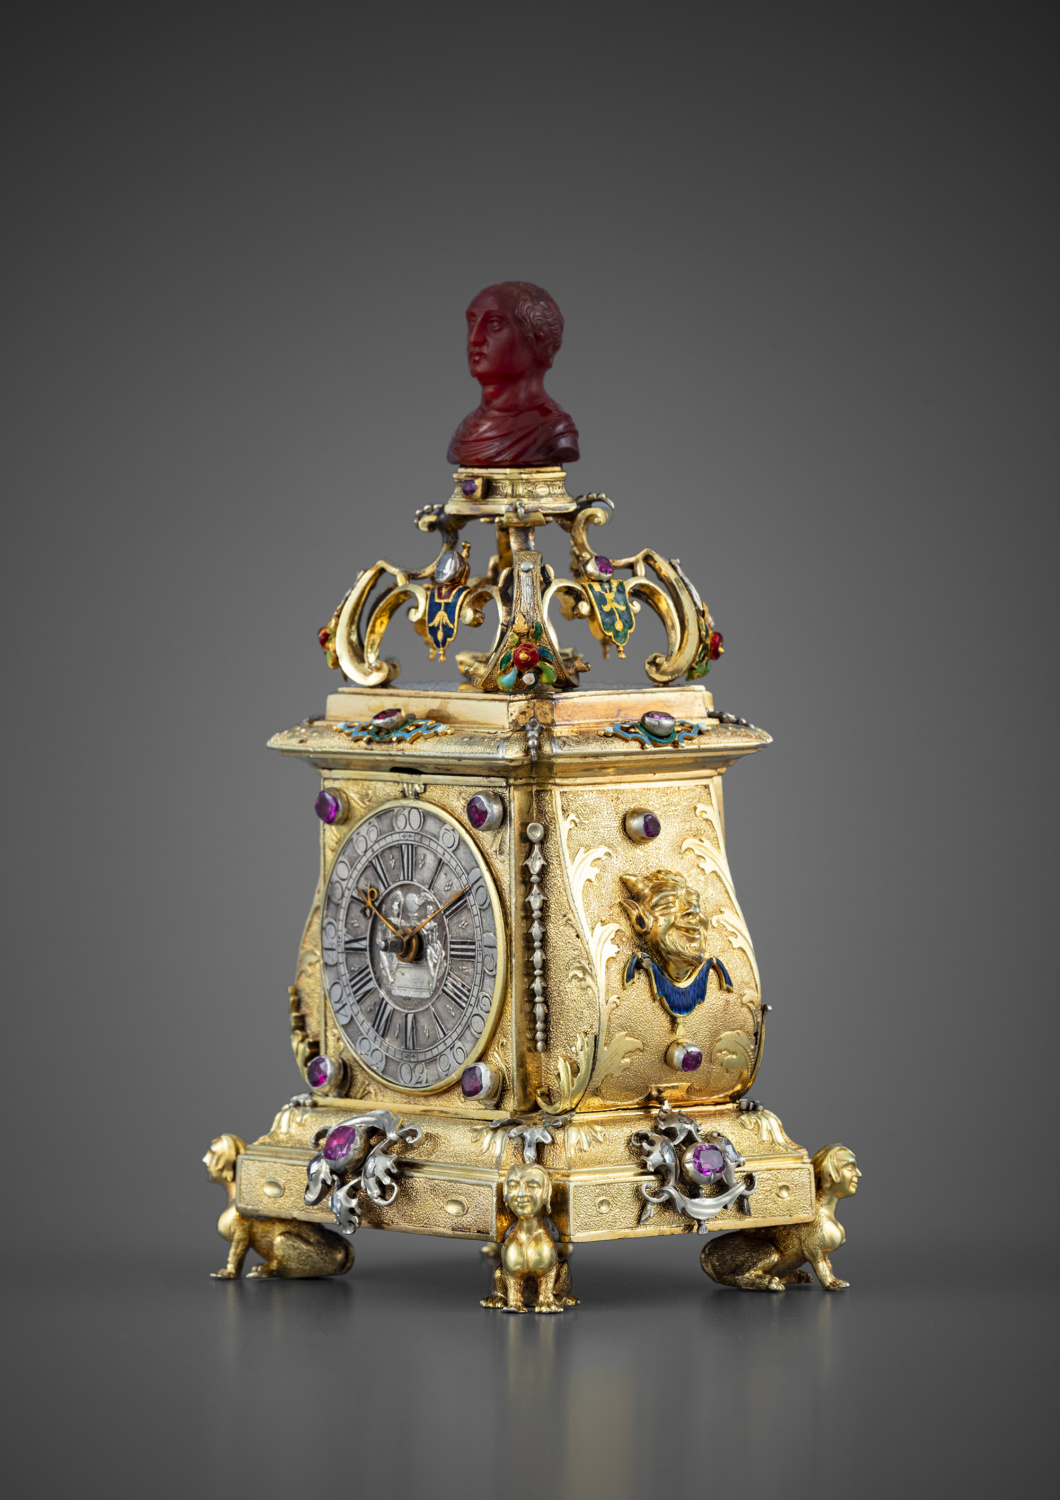 A precious miniature clock in its original case - Galerie Kugel